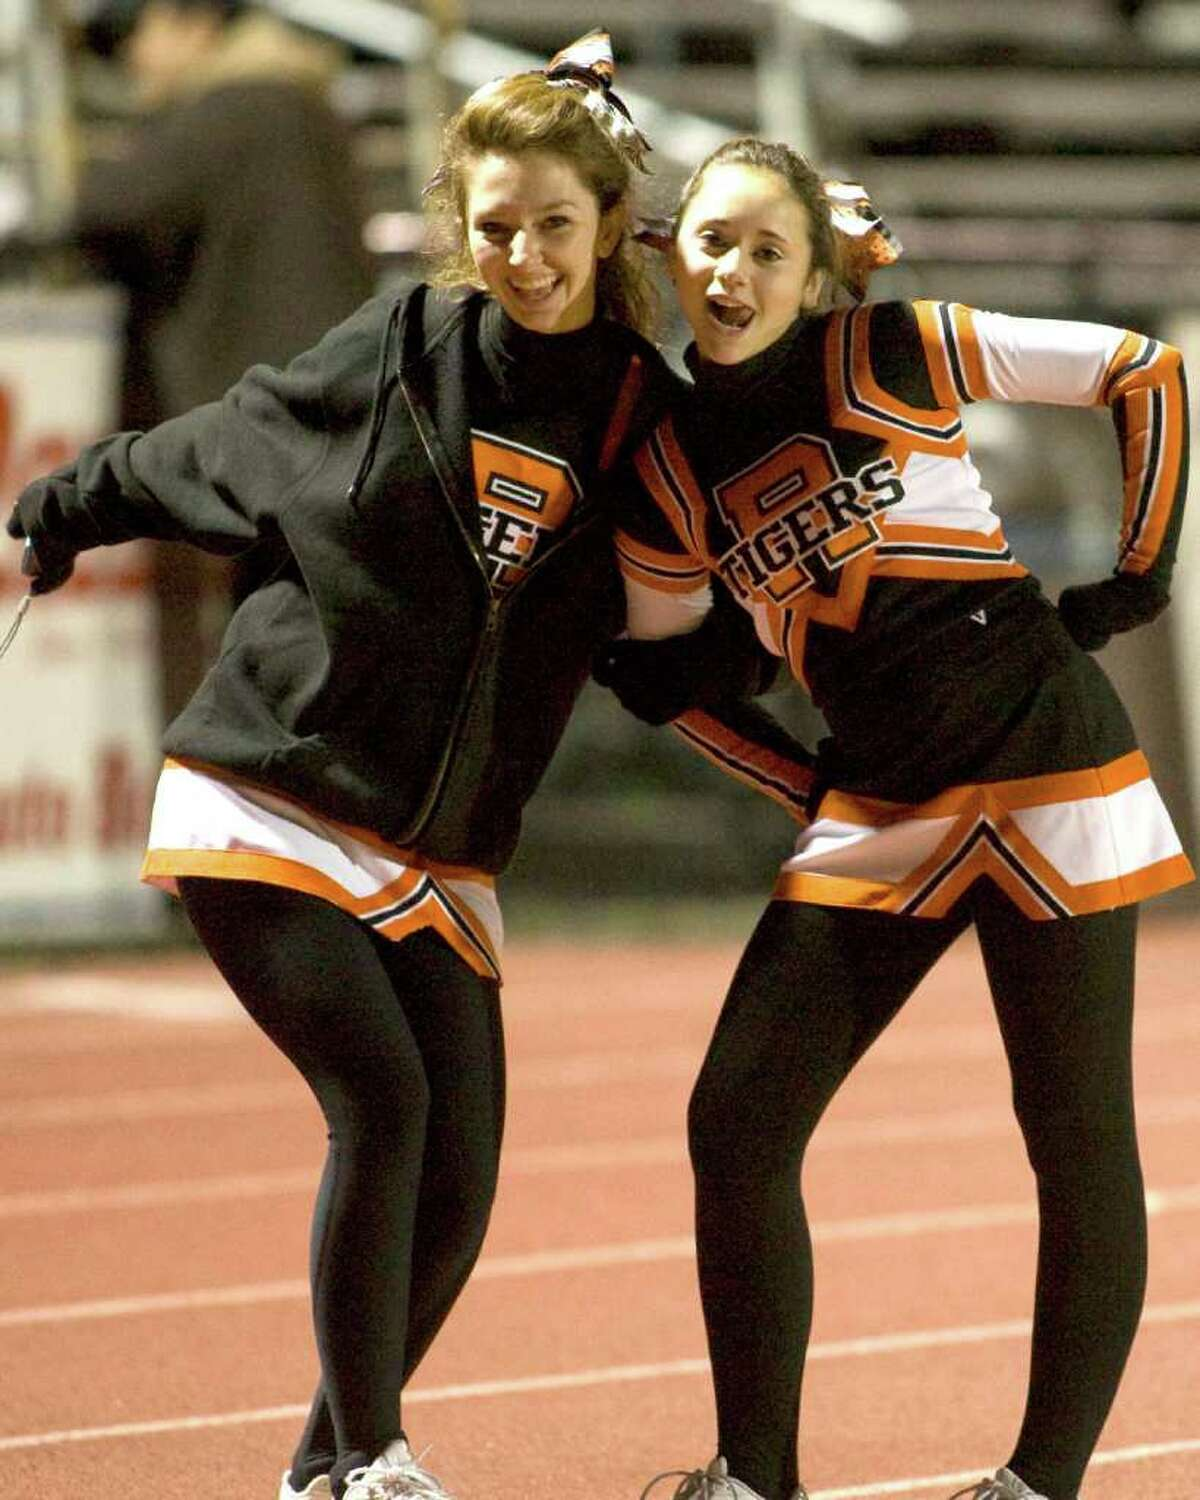 Two Ridgefield cheerleaders pose before the Tigers' football game against Trumbull Friday night, Nov. 5, 2010, at Ridgefield High School.